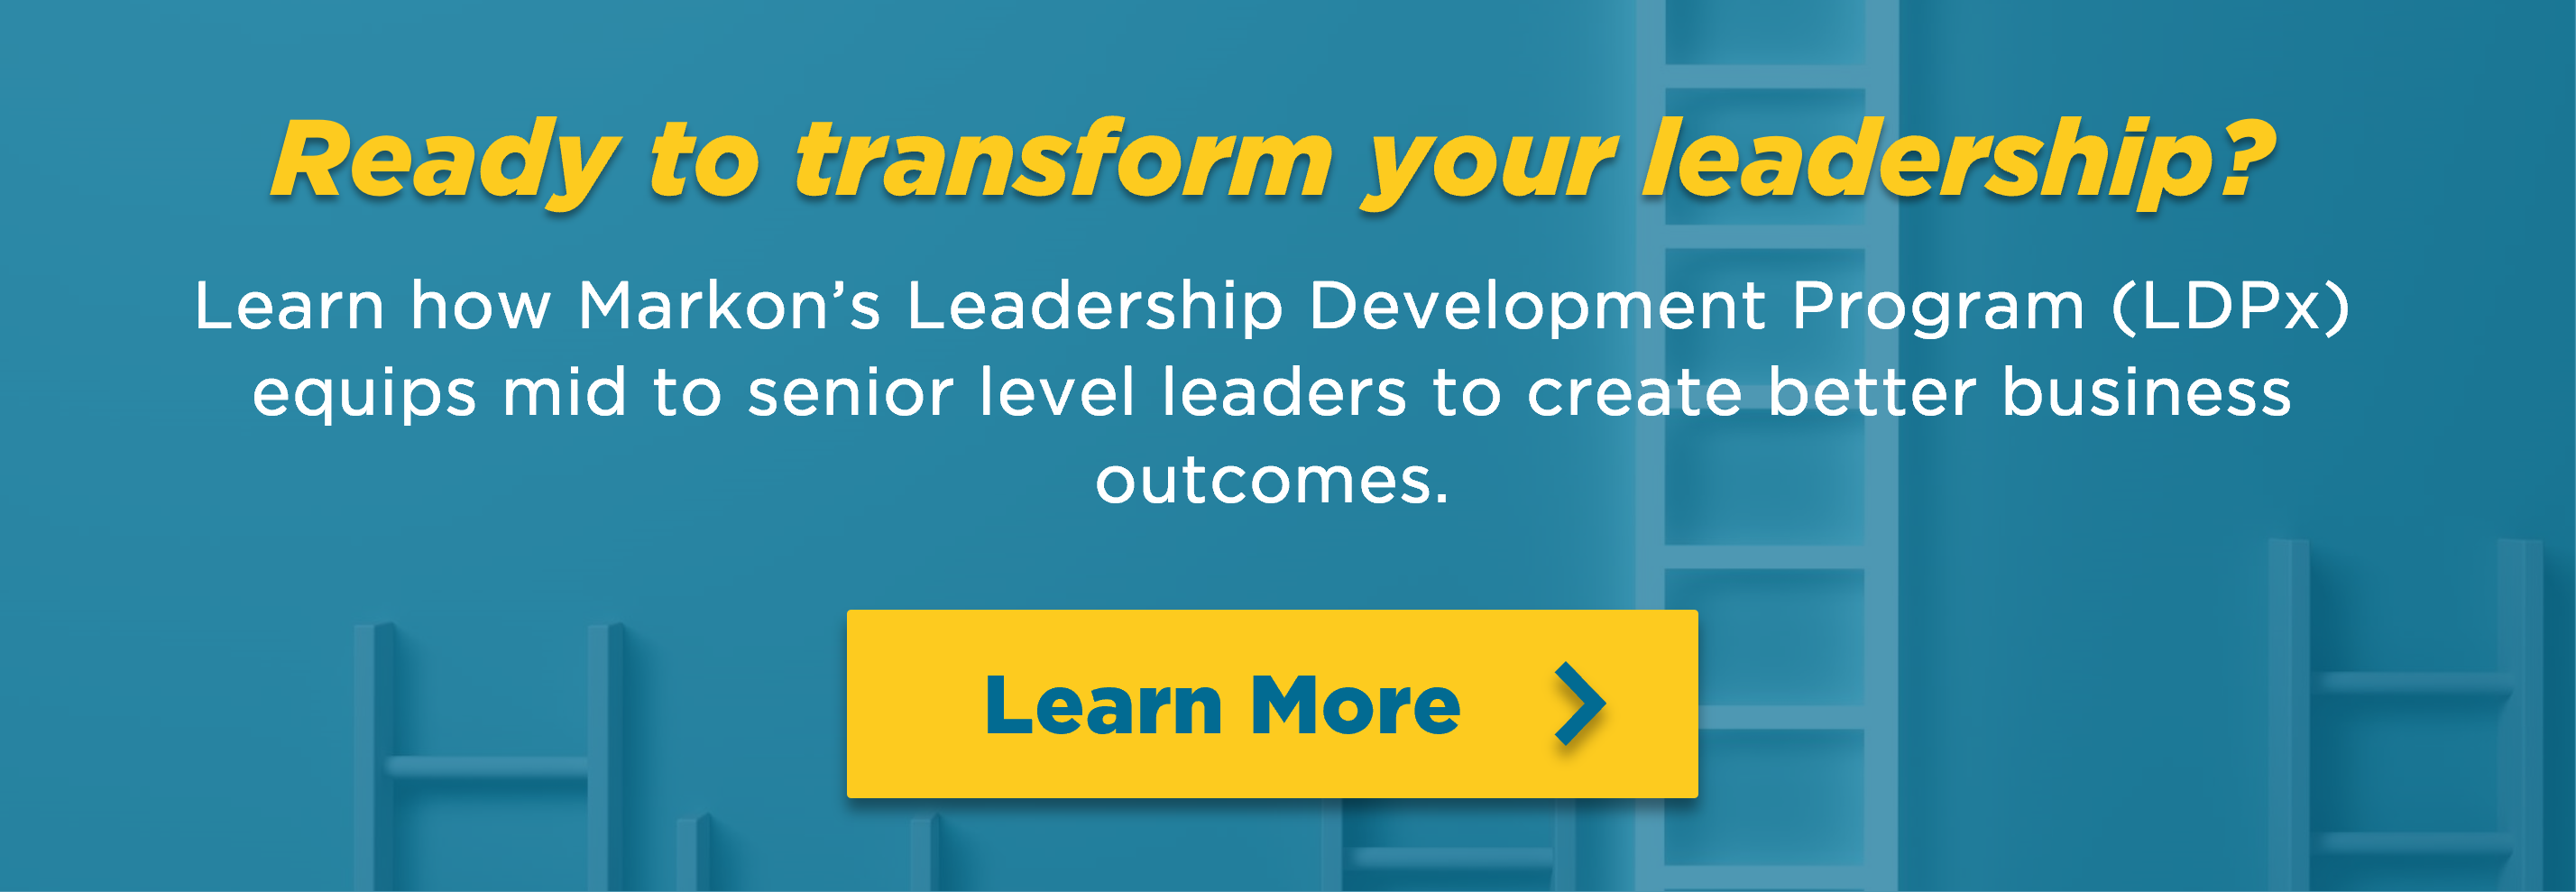 Transform your leadership: We equip current and future leaders to create better business outcomes. Markon's External Leadership Development Program (LDPx) class begins October 2019. Space is limited. Click here to reserve your seat now!